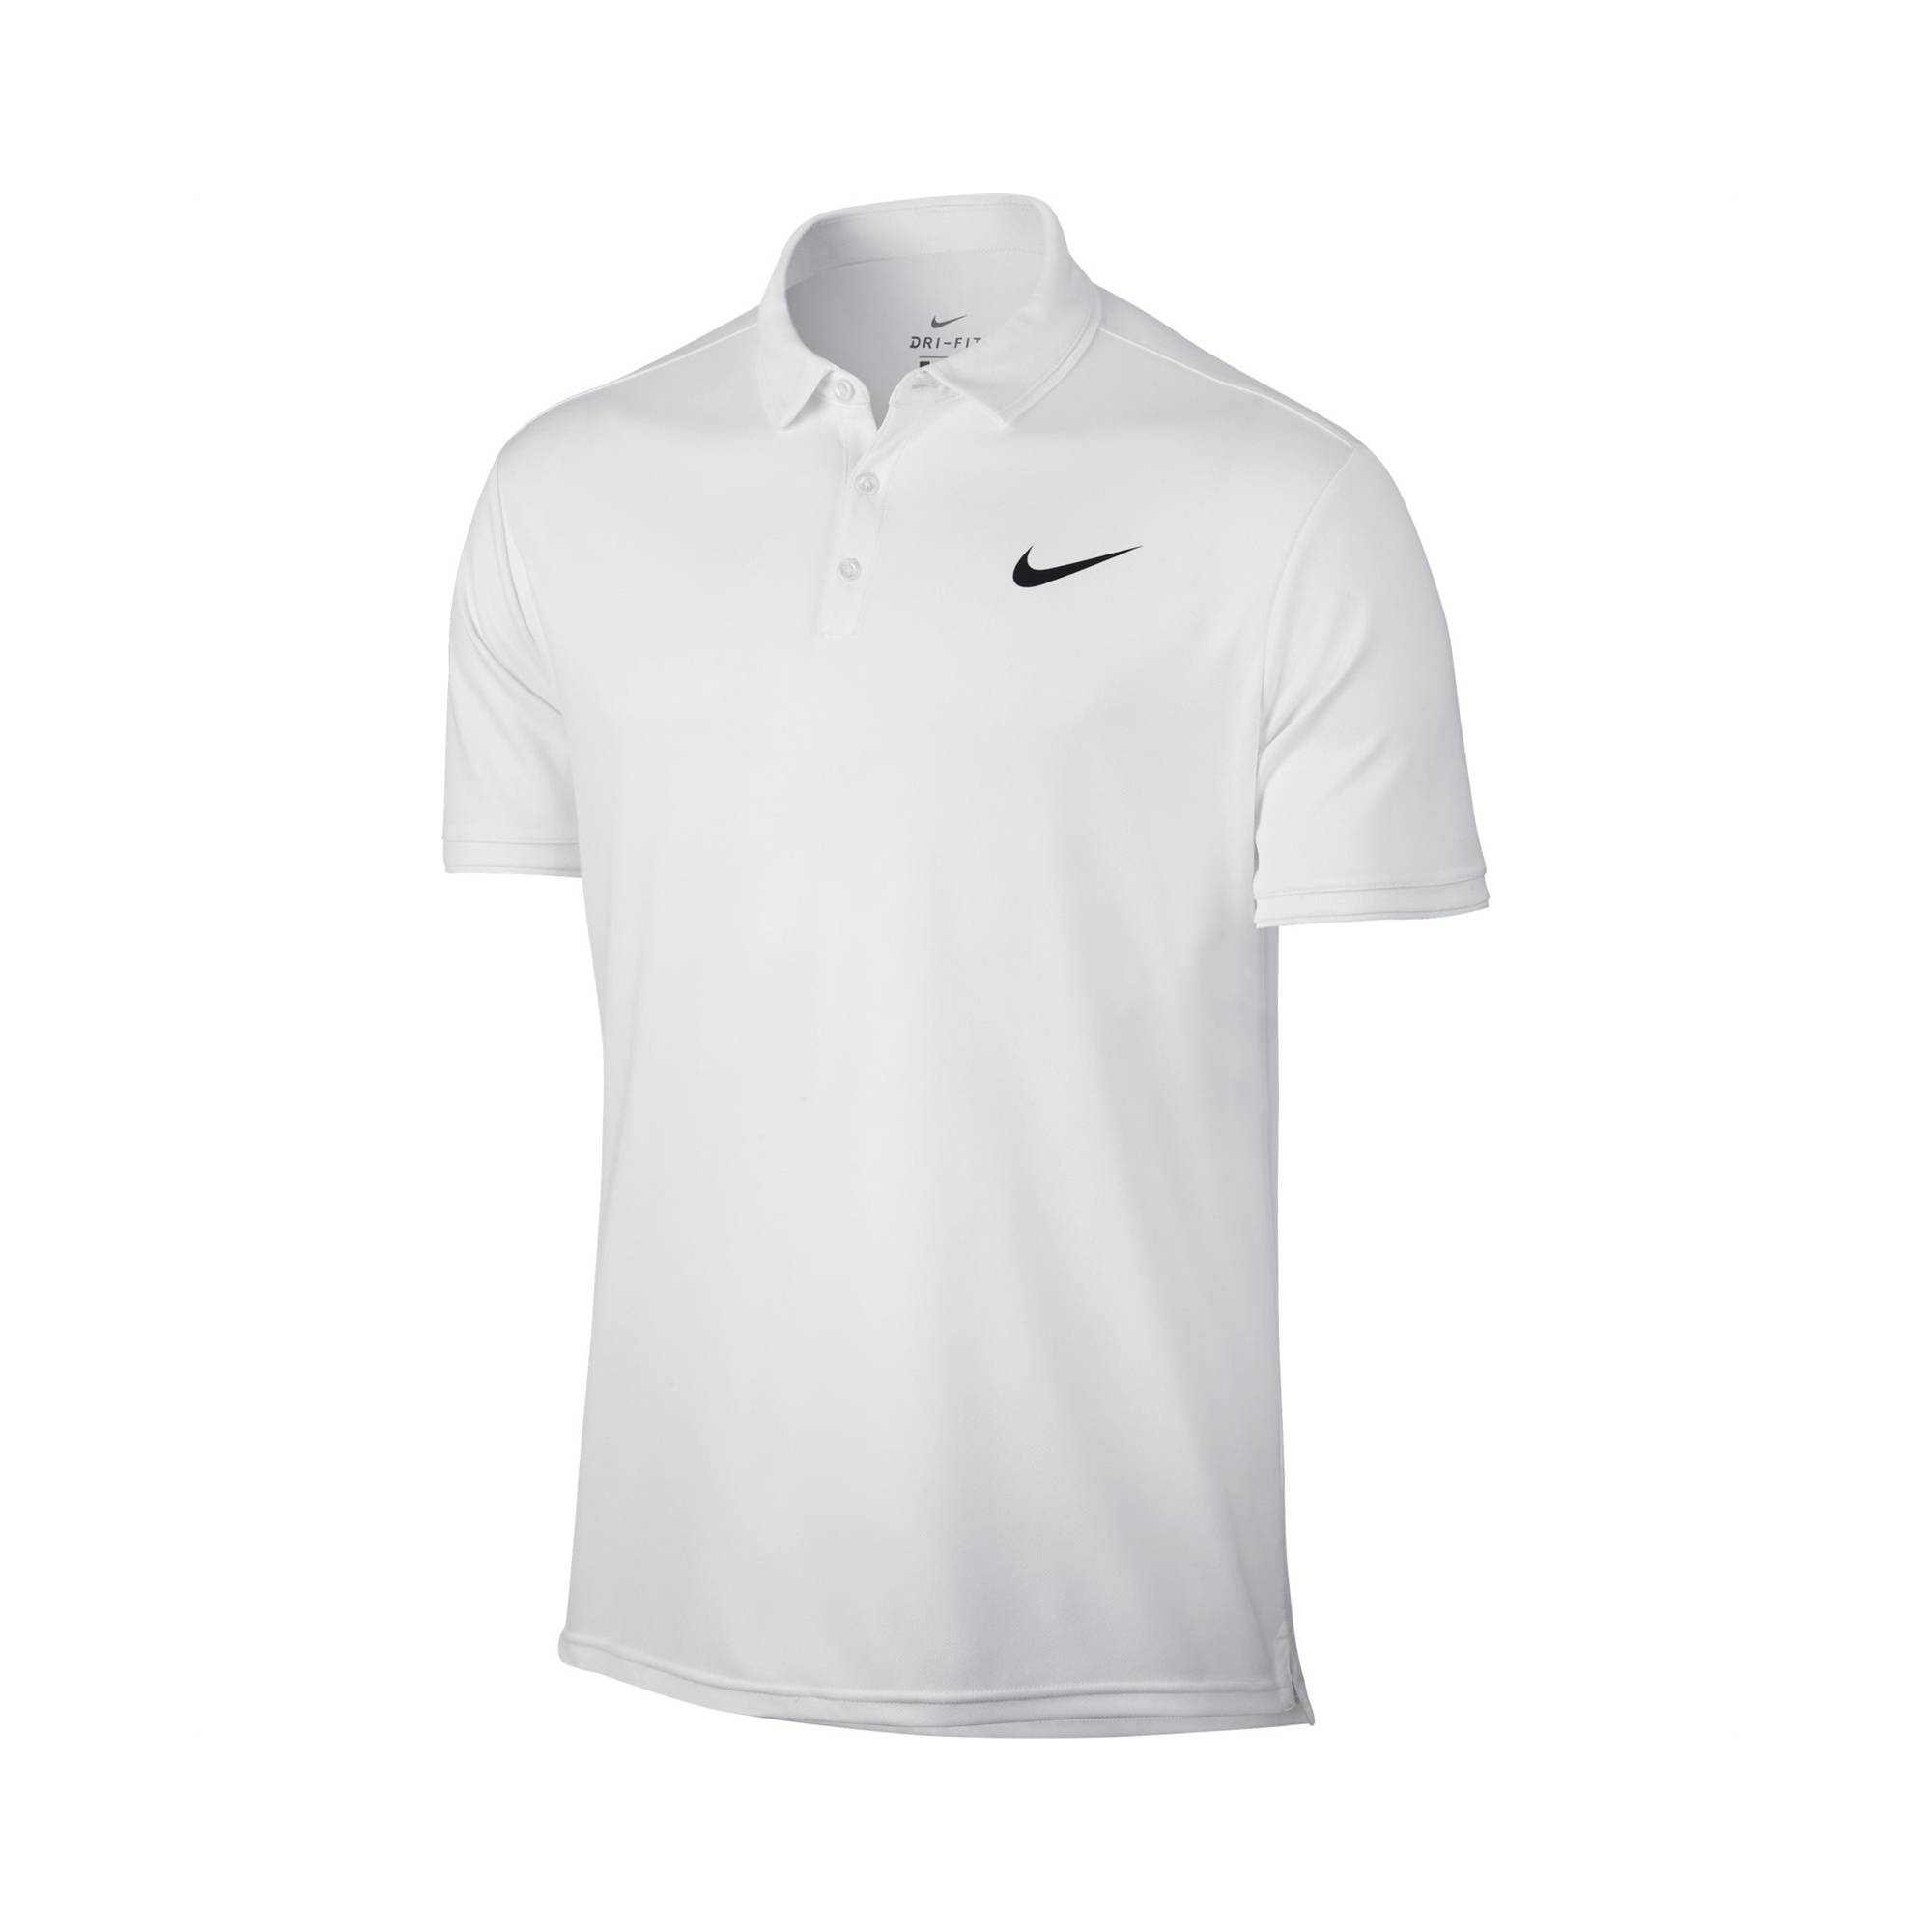 Image of Nike Dry Team Polo All White XL